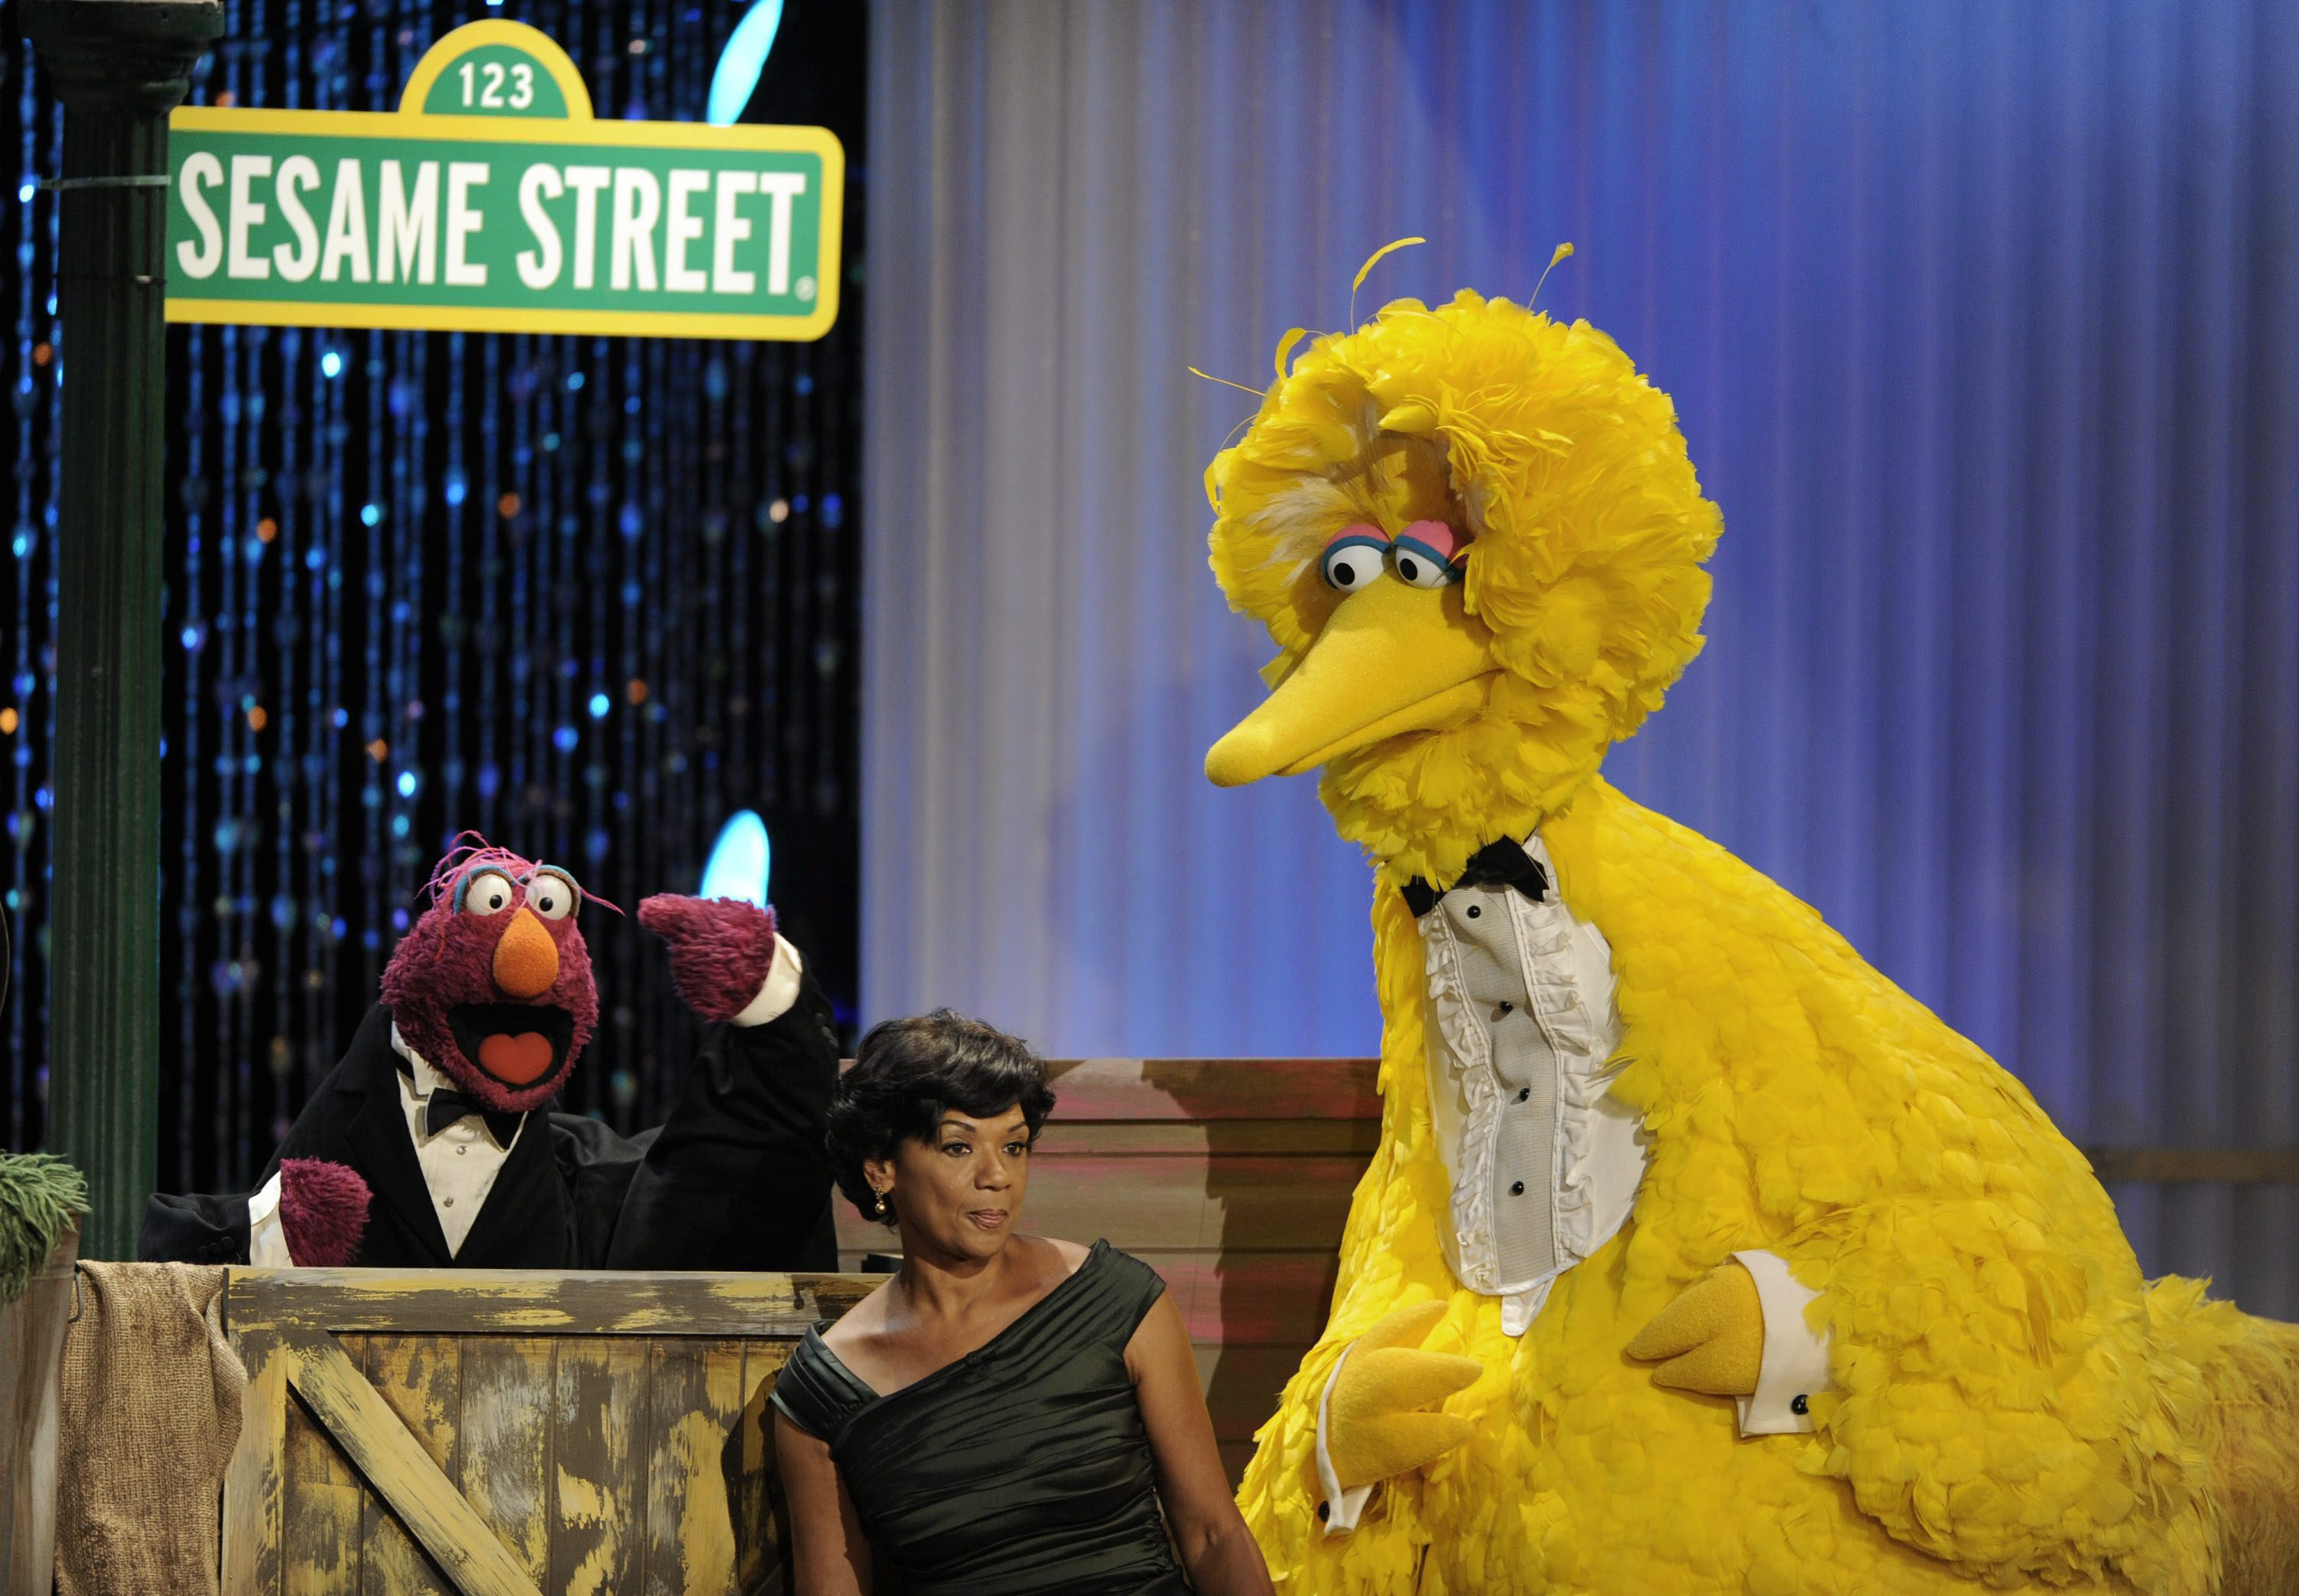 Maria From Sesame Street Is Retiring After 44 Years on the Show Maria From Sesame Street Is Retiring After 44 Years on the Show new pictures